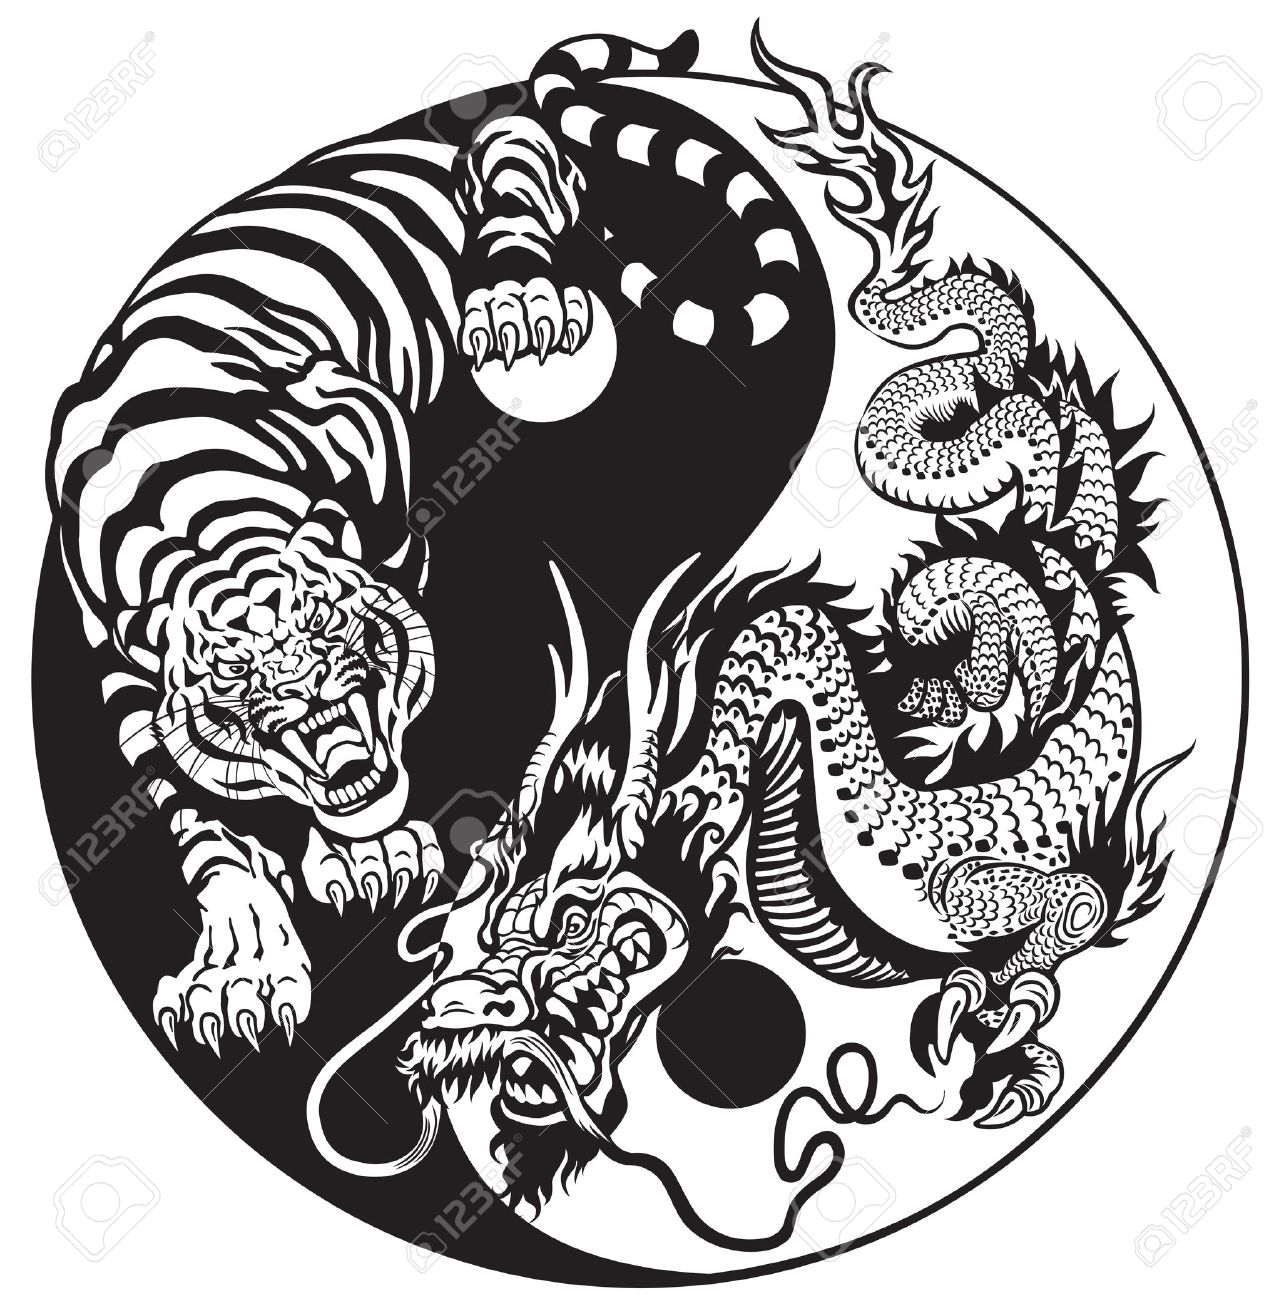 Dragon and tiger yin yang symbol of harmony and balance black dragon and tiger yin yang symbol of harmony and balance black and white stock vector biocorpaavc